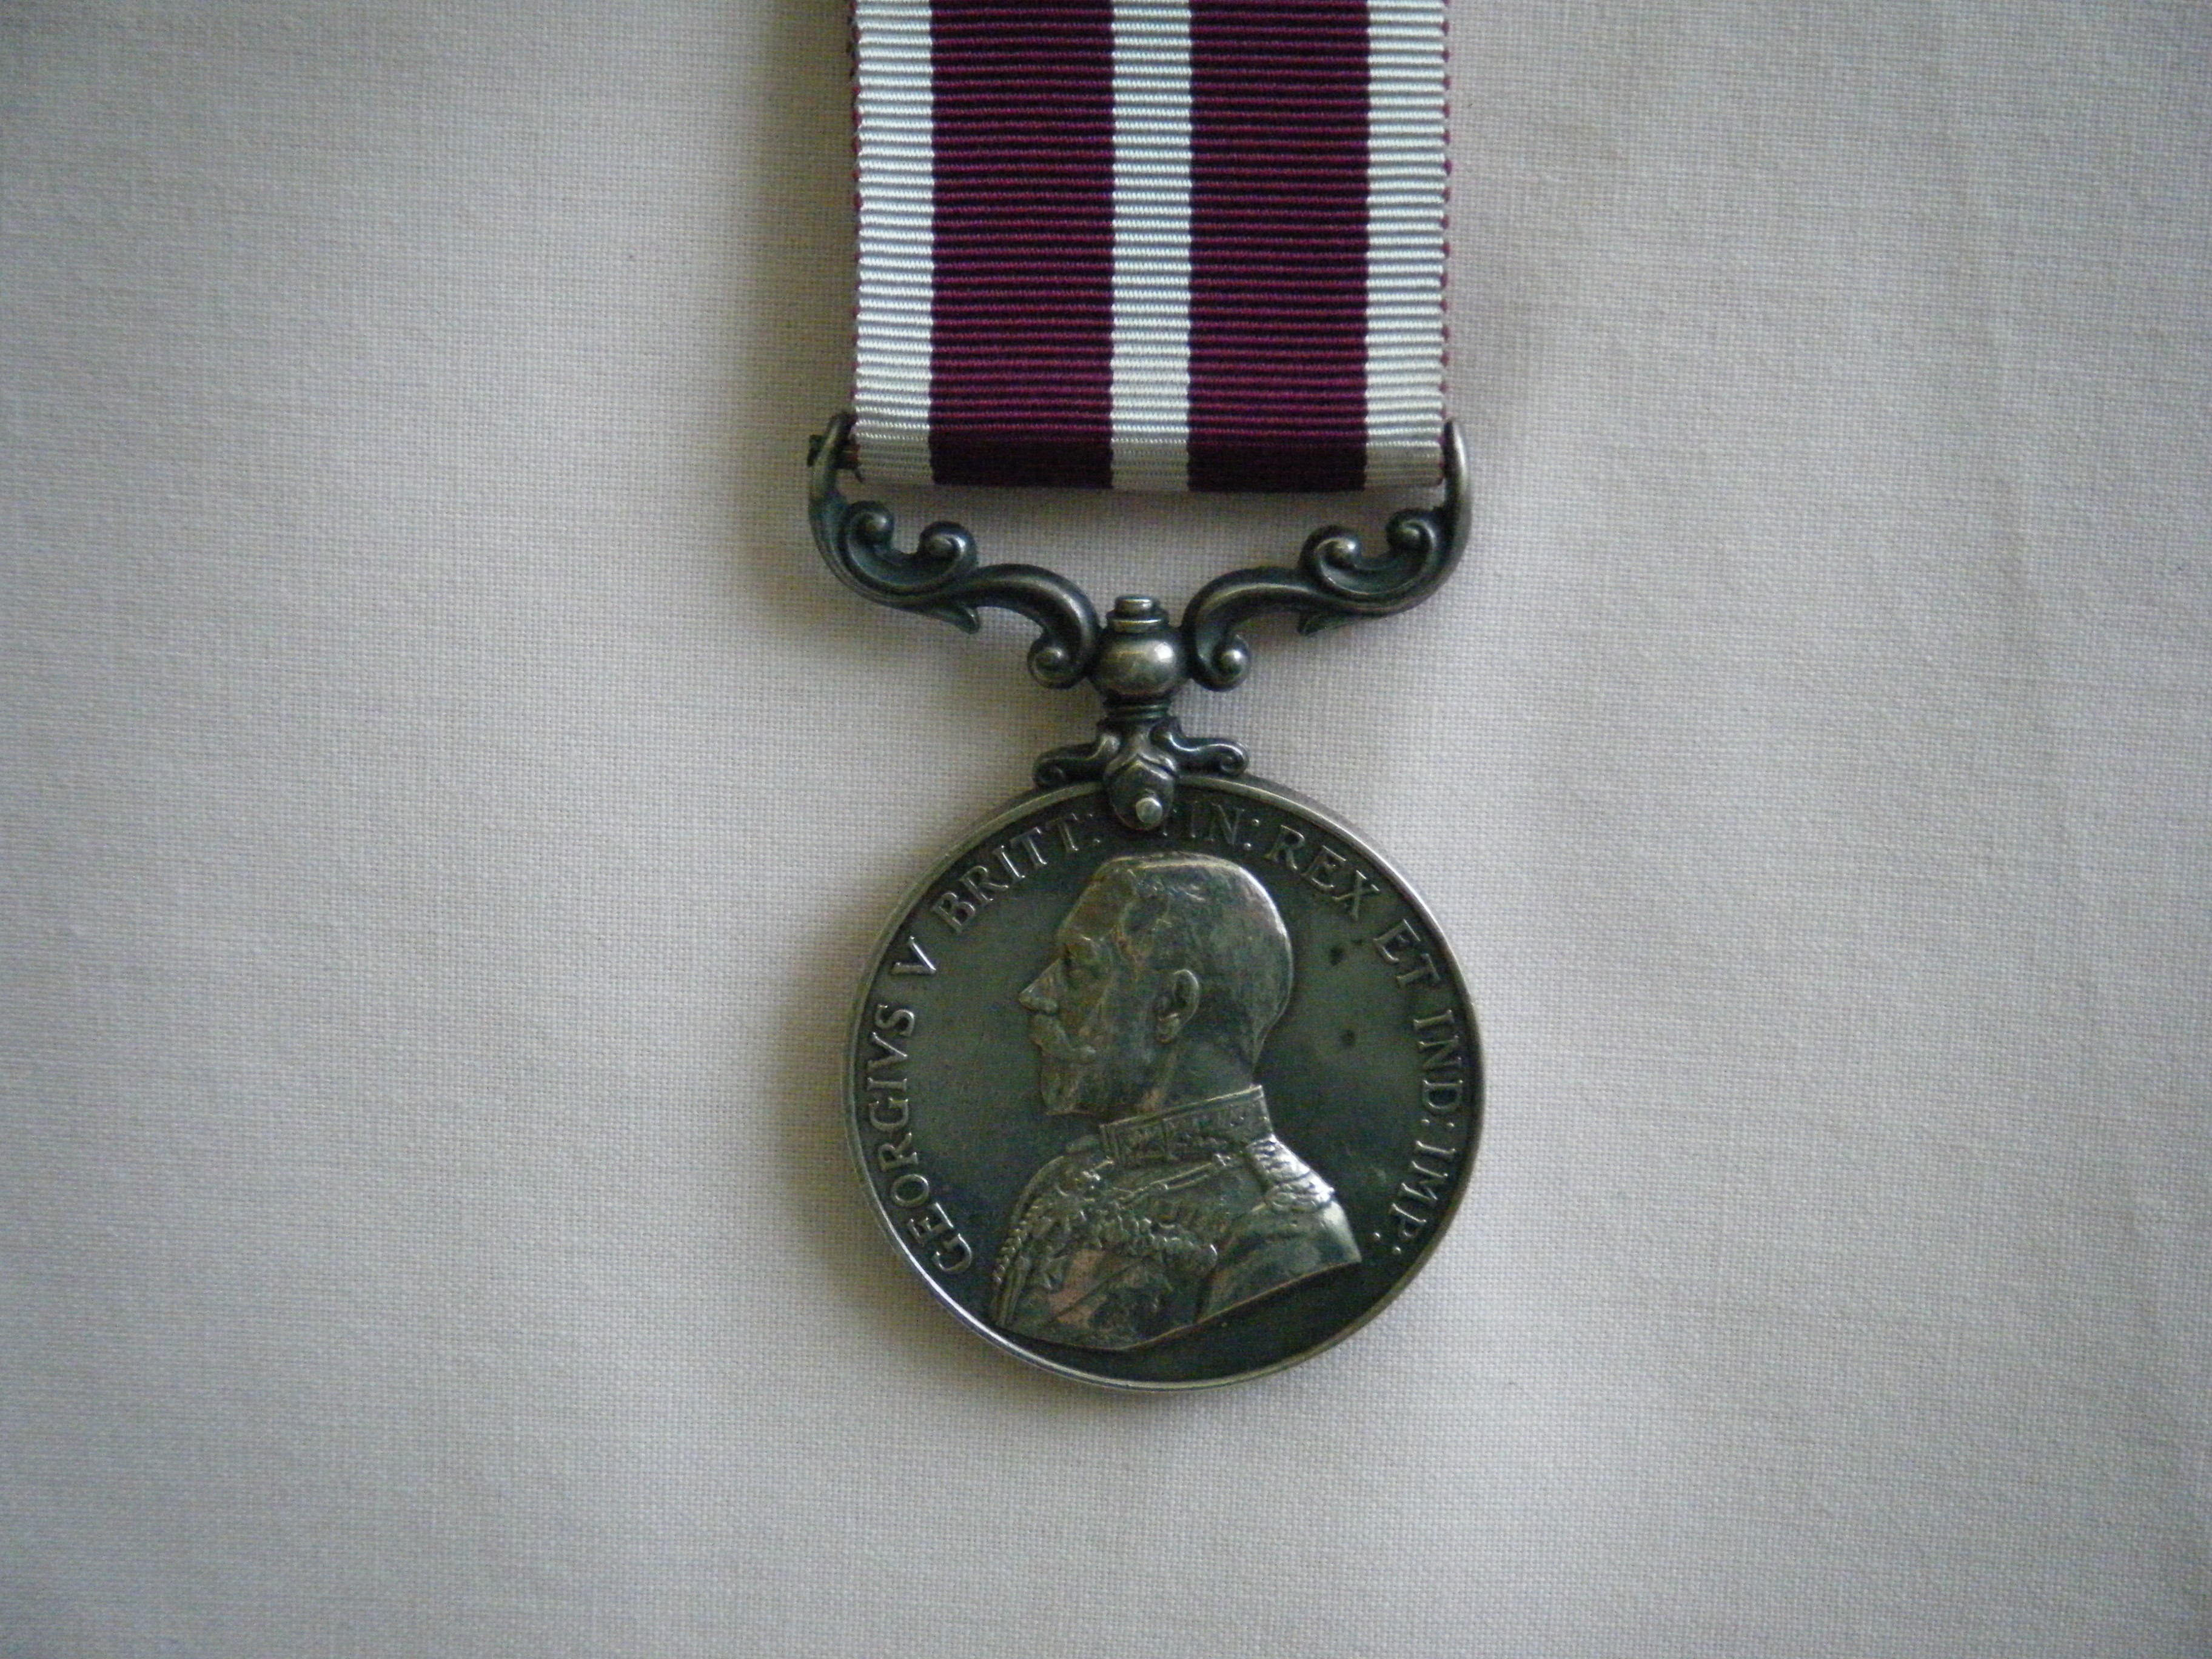 ONE.  344065 Spr. G. Richardson, Royal Engineers (awarded for services with the British Military Mission in South Russia).